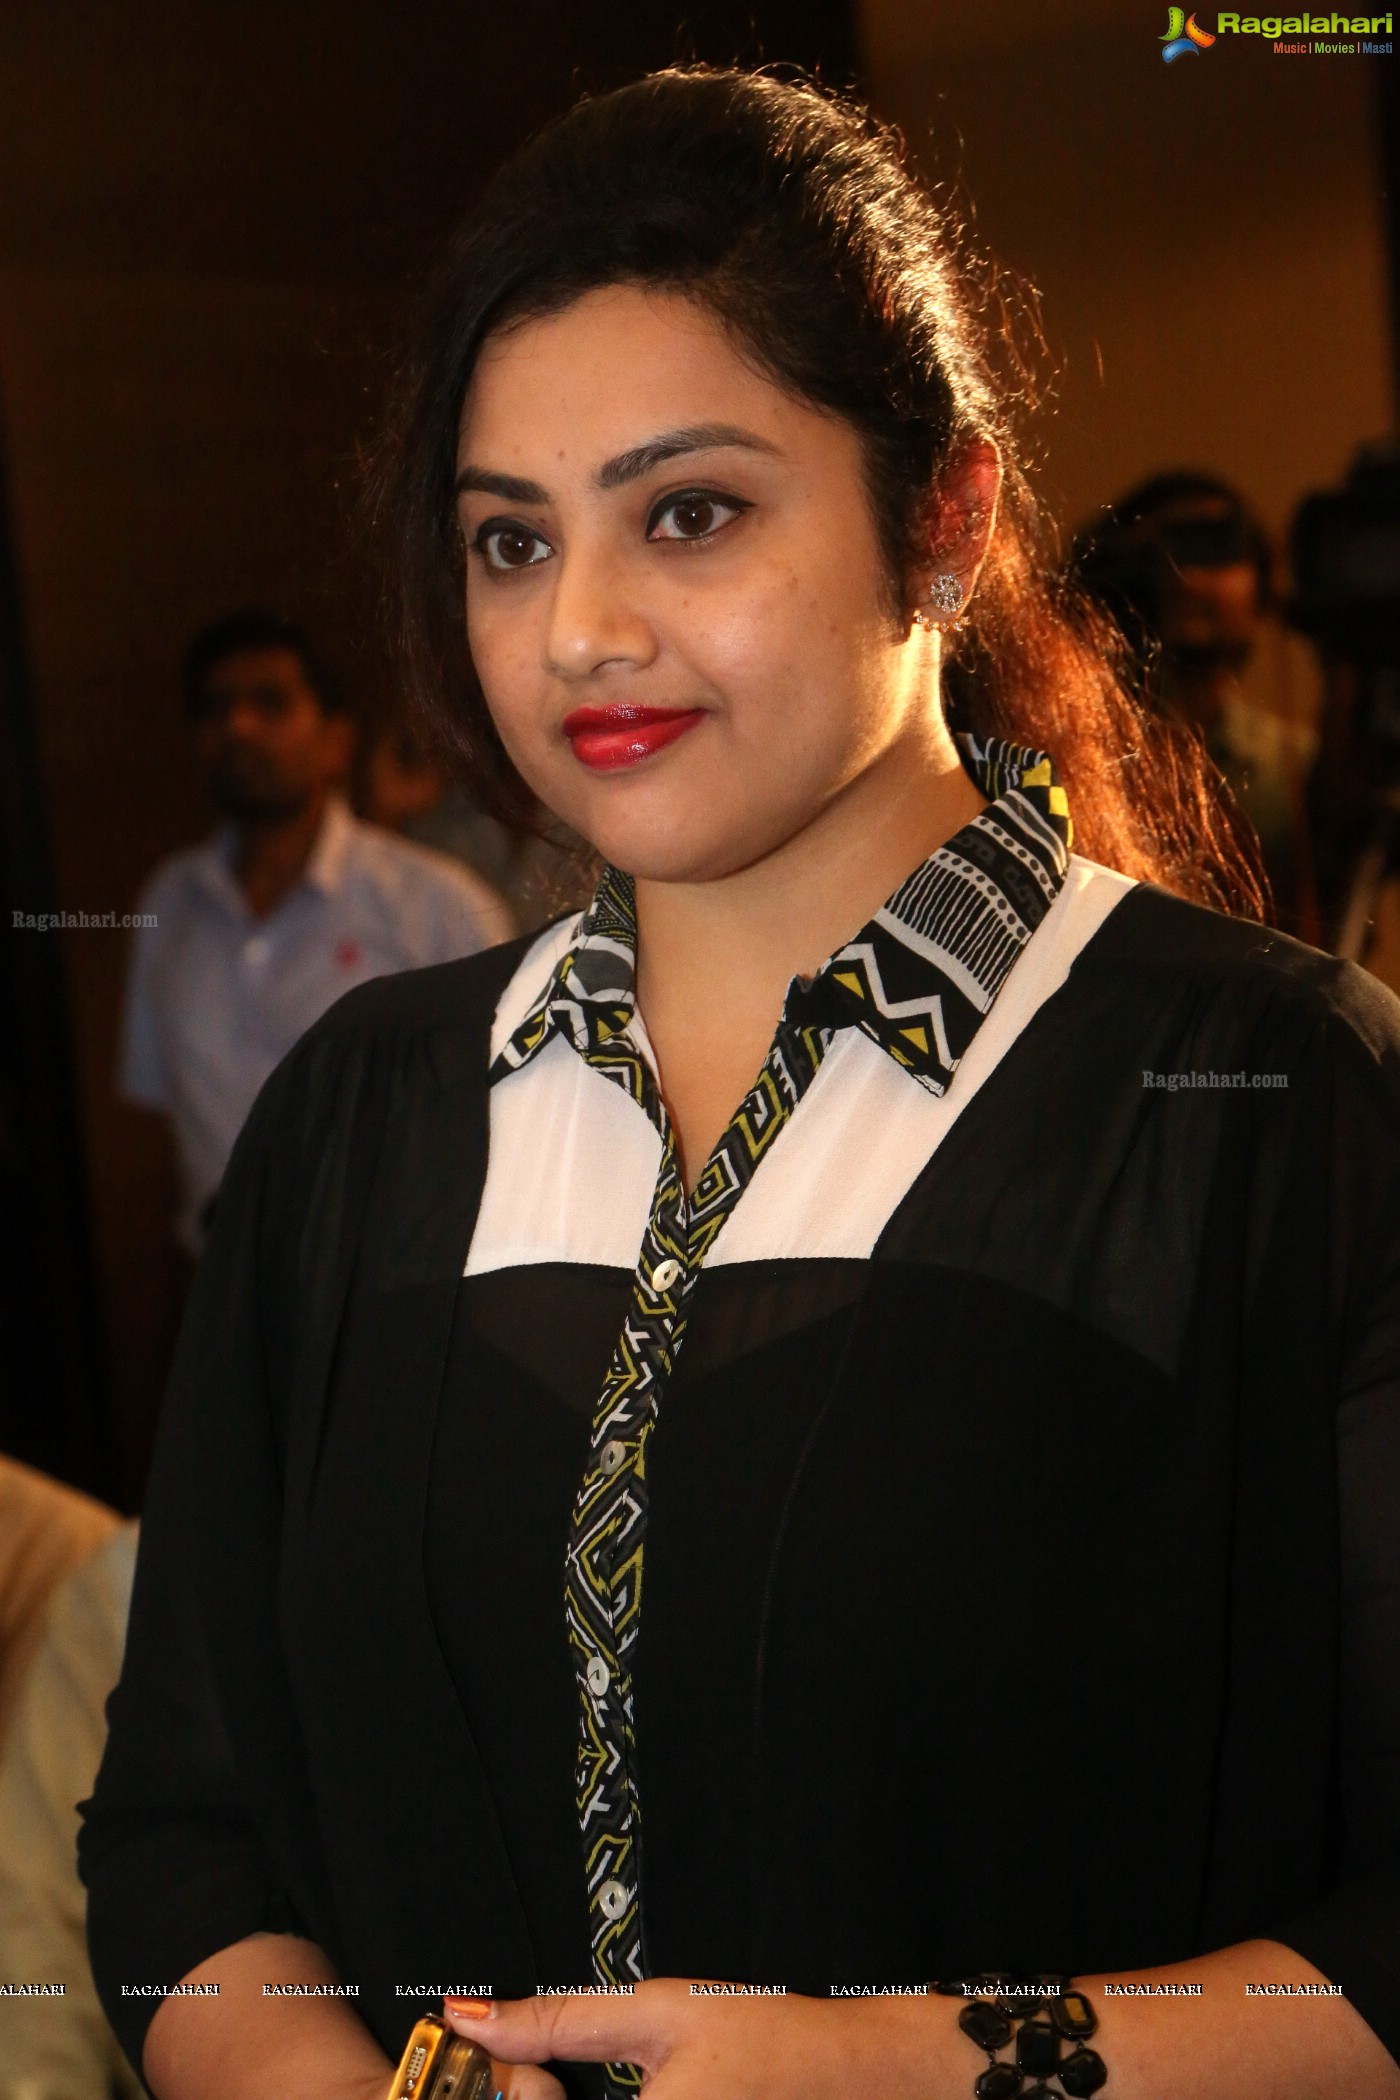 meena posters image 26 tollywood actress posters images photos